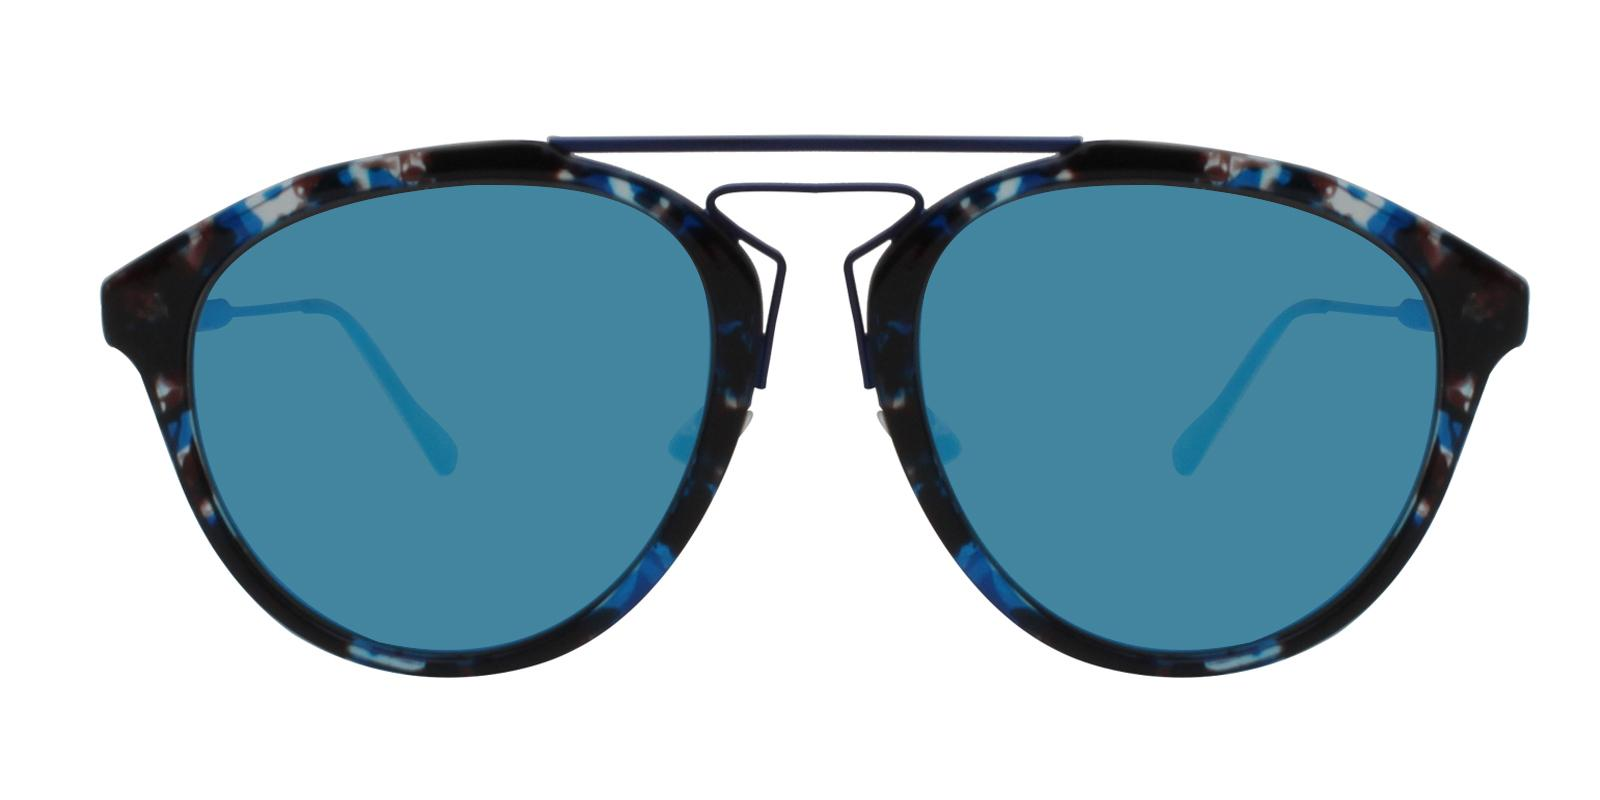 Ava Blue Metal , Combination , TR NosePads , Sunglasses Frames from ABBE Glasses